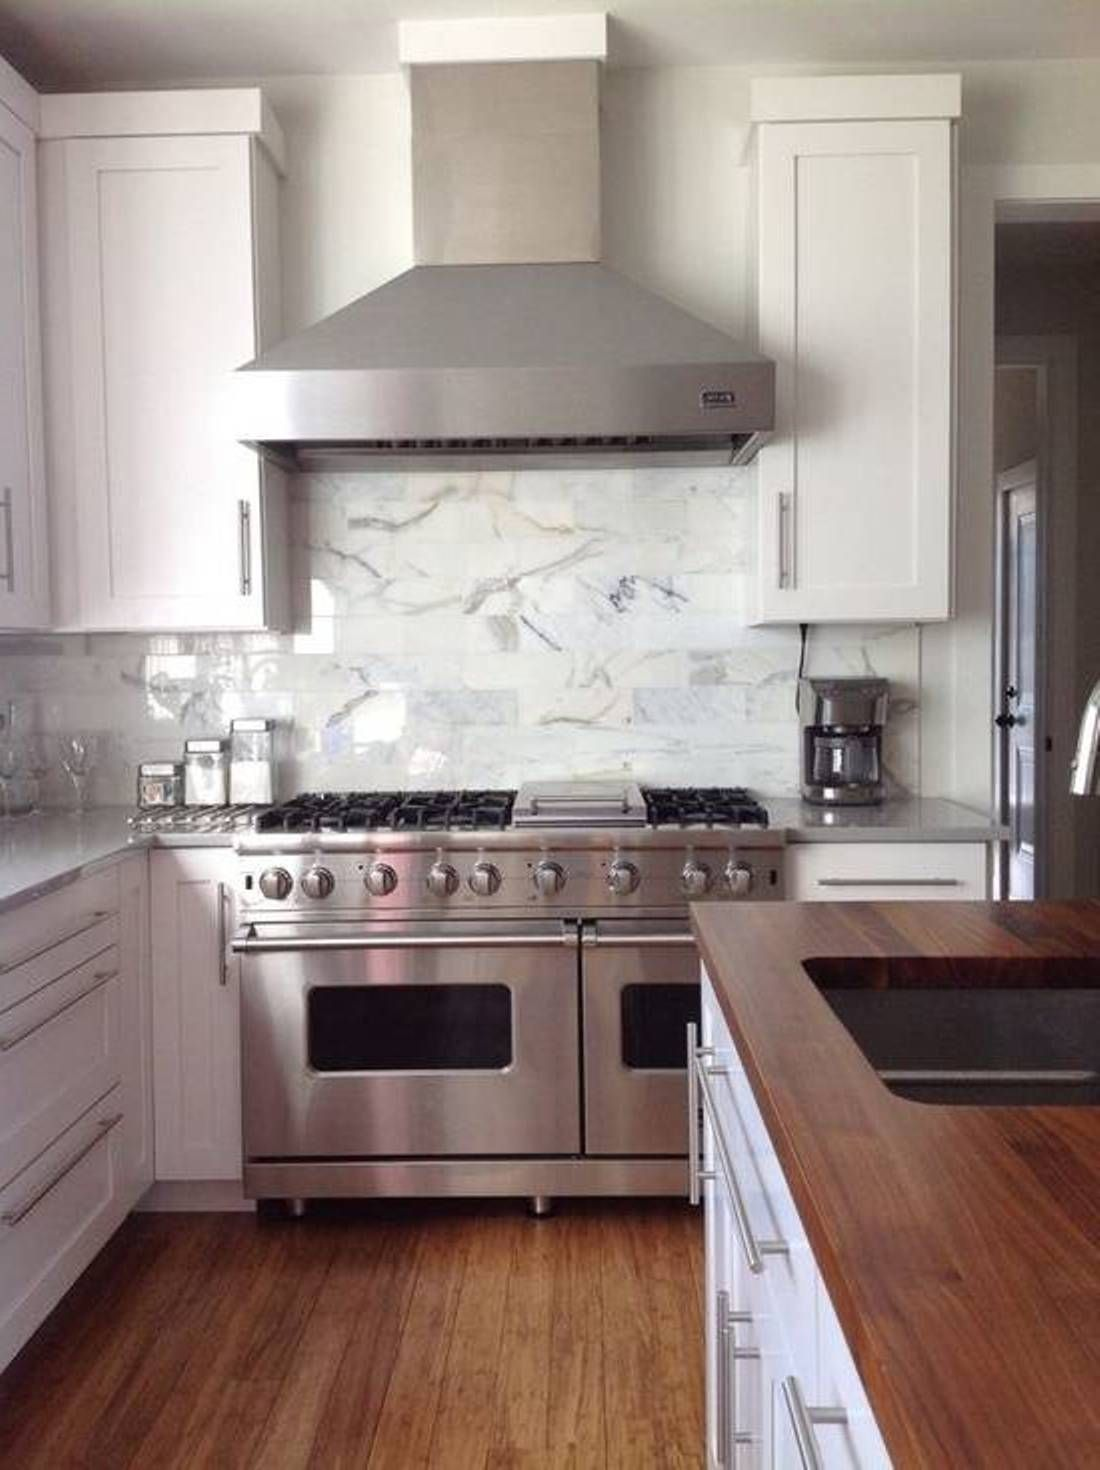 Unique darkslategray stainless steel stove backsplash for Small white kitchen ideas